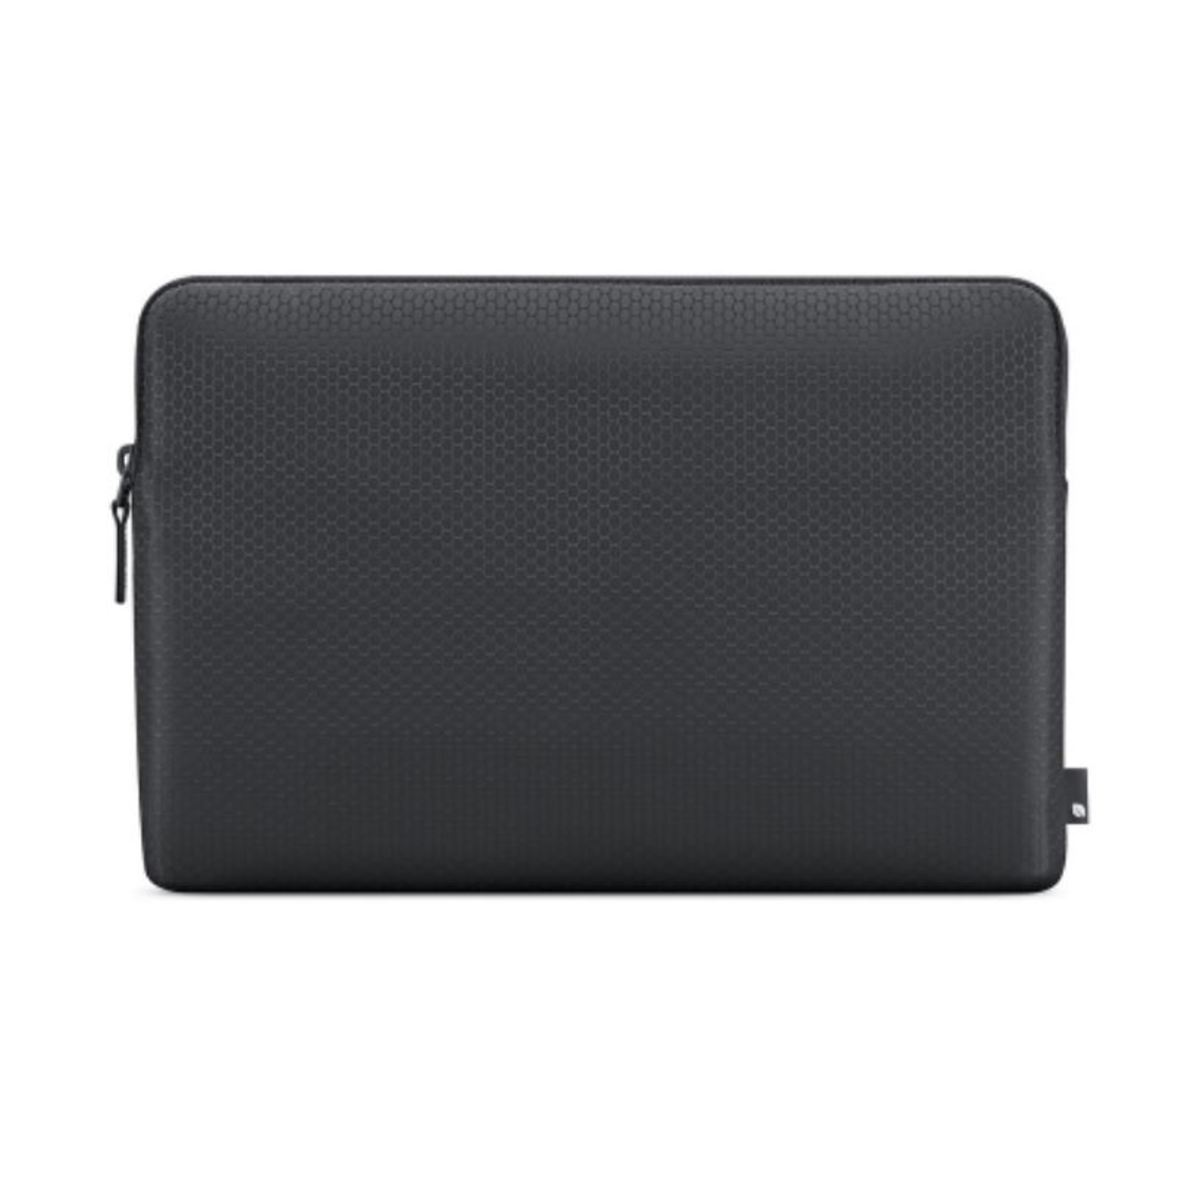 "Apple Slim Sleeve in Honeycomb Ripstop for MacBook Air/ Pro 13"" INMB100385-BLk Black"